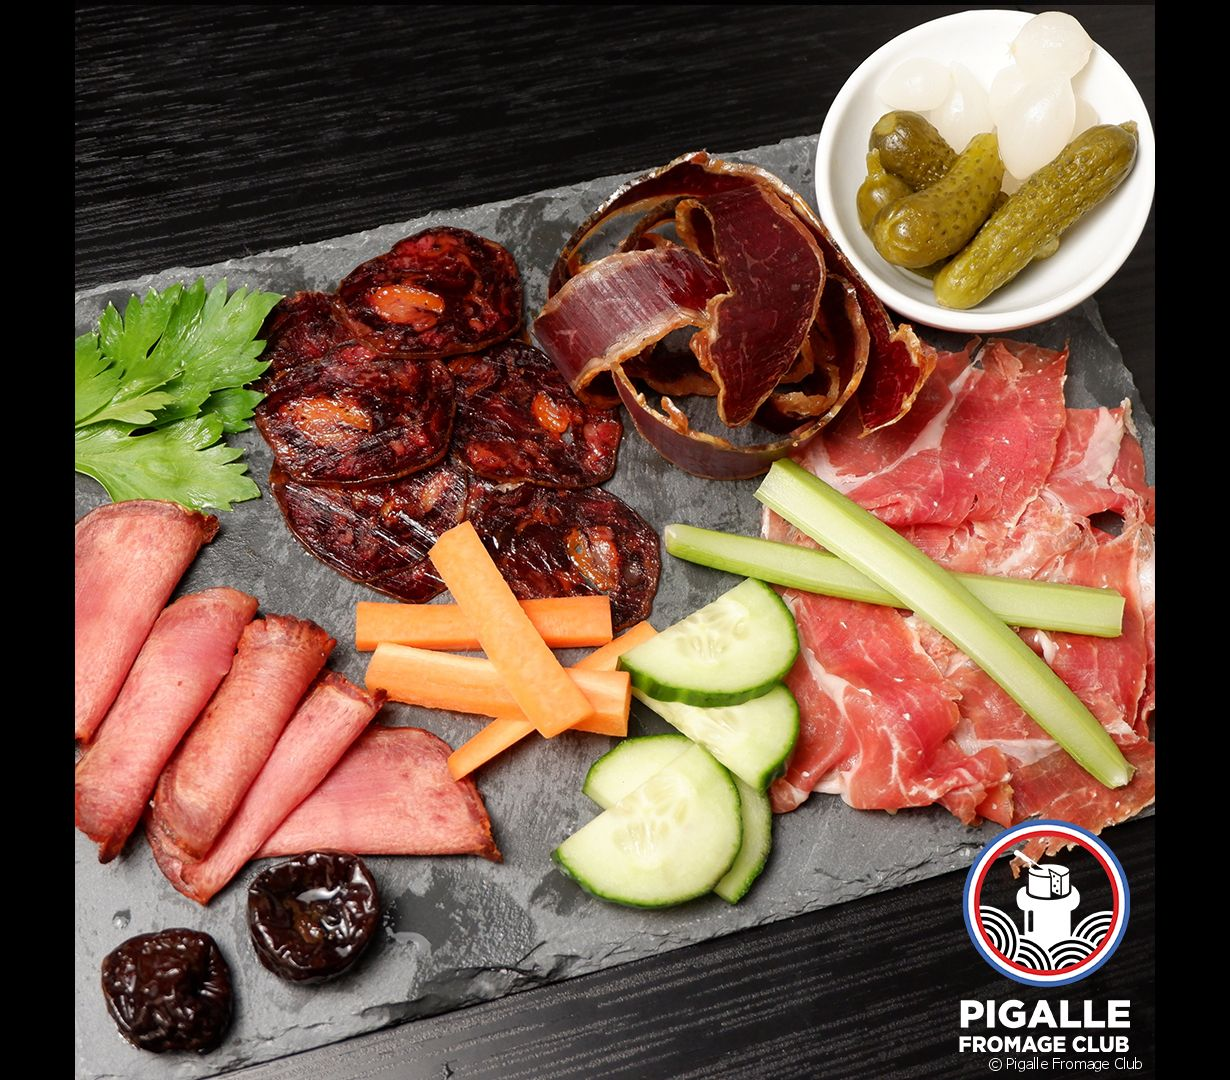 Pigalle Fromage Club, 35 Rue Jean-Baptiste Pigalle, 75009 Paris - Photo 19